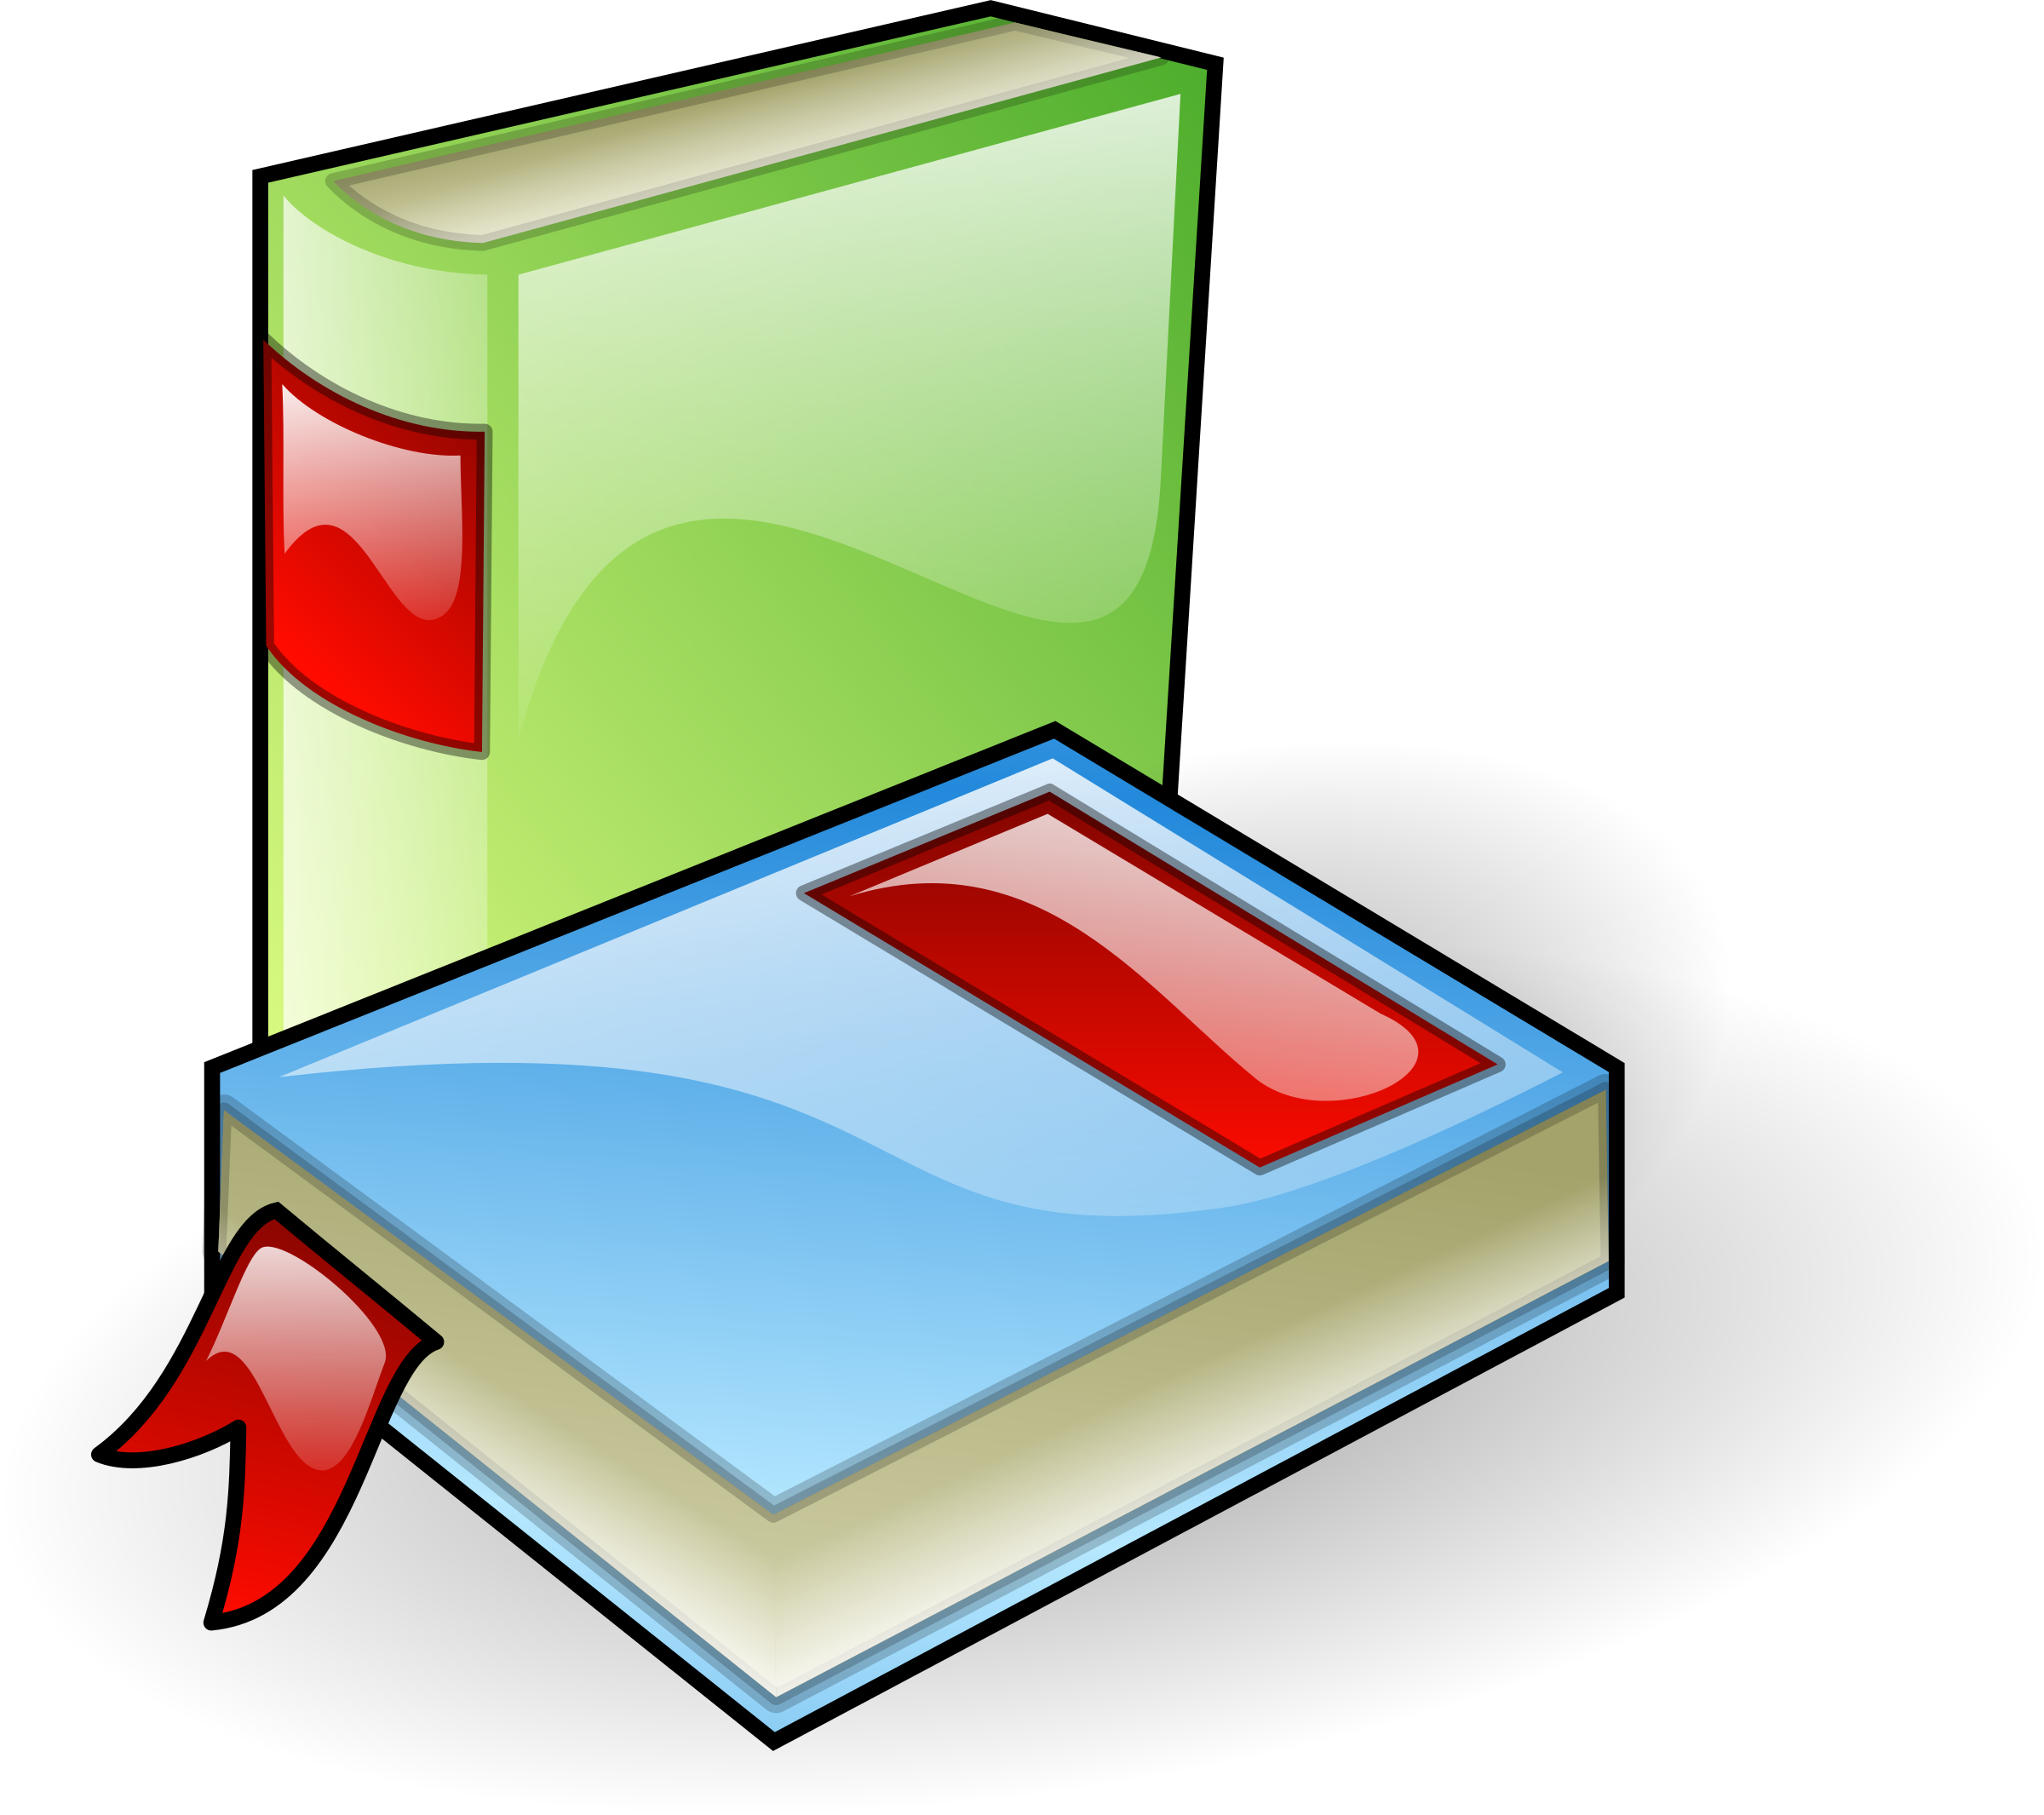 Books big image png. Textbook clipart language